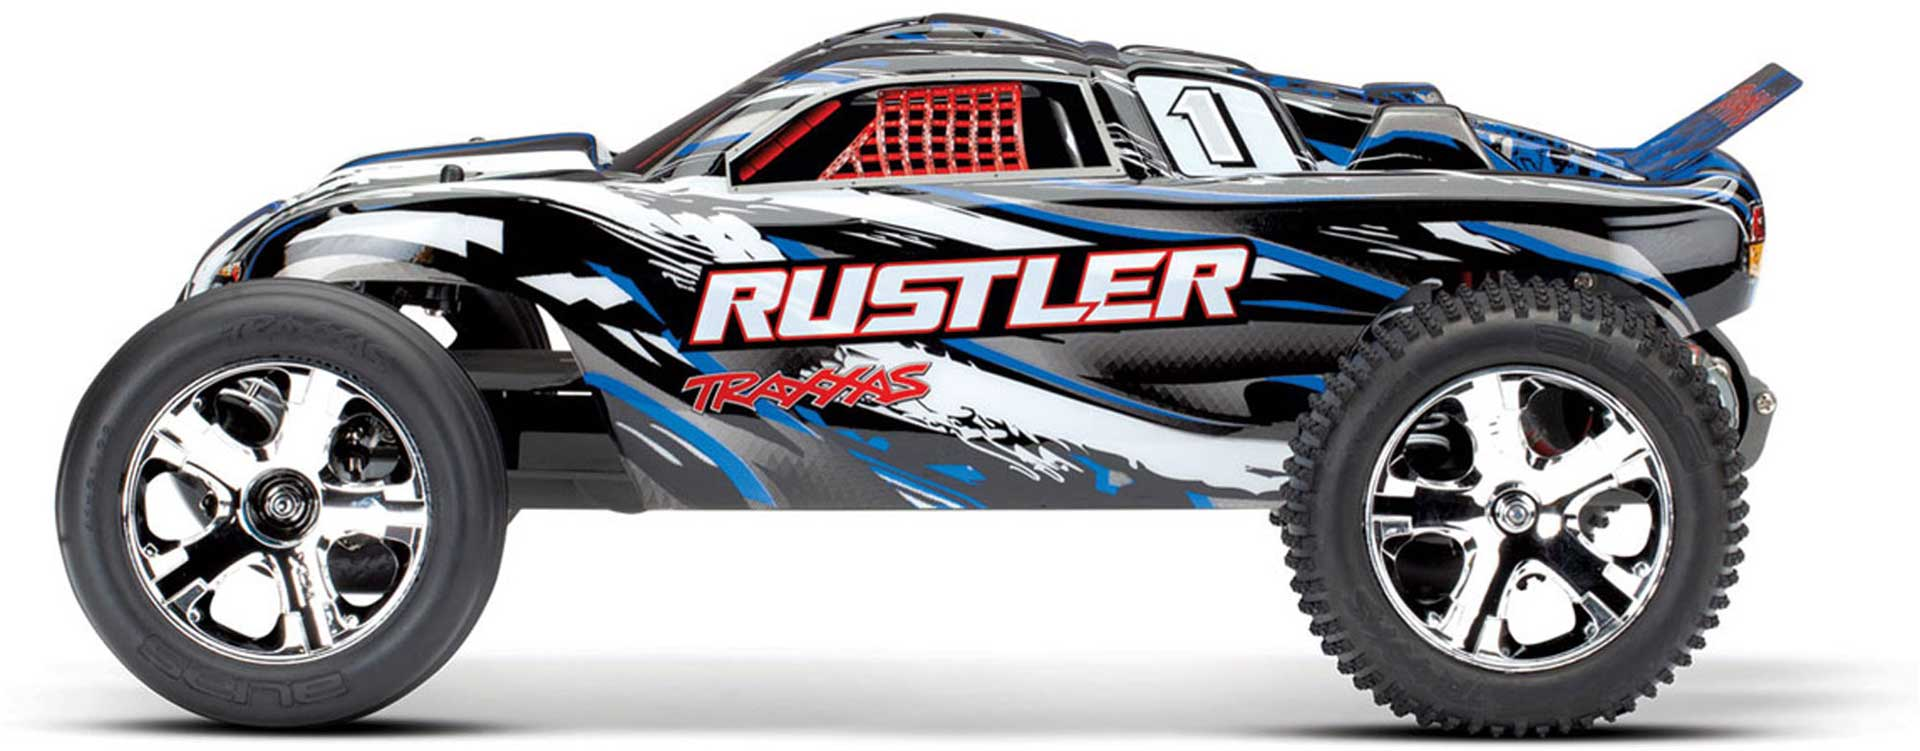 TRAXXAS RUSTLER BLUE MONSTER TRUCK BRUSHED 1/10 2WD RTR + 12V CHARGER AND BATTERY